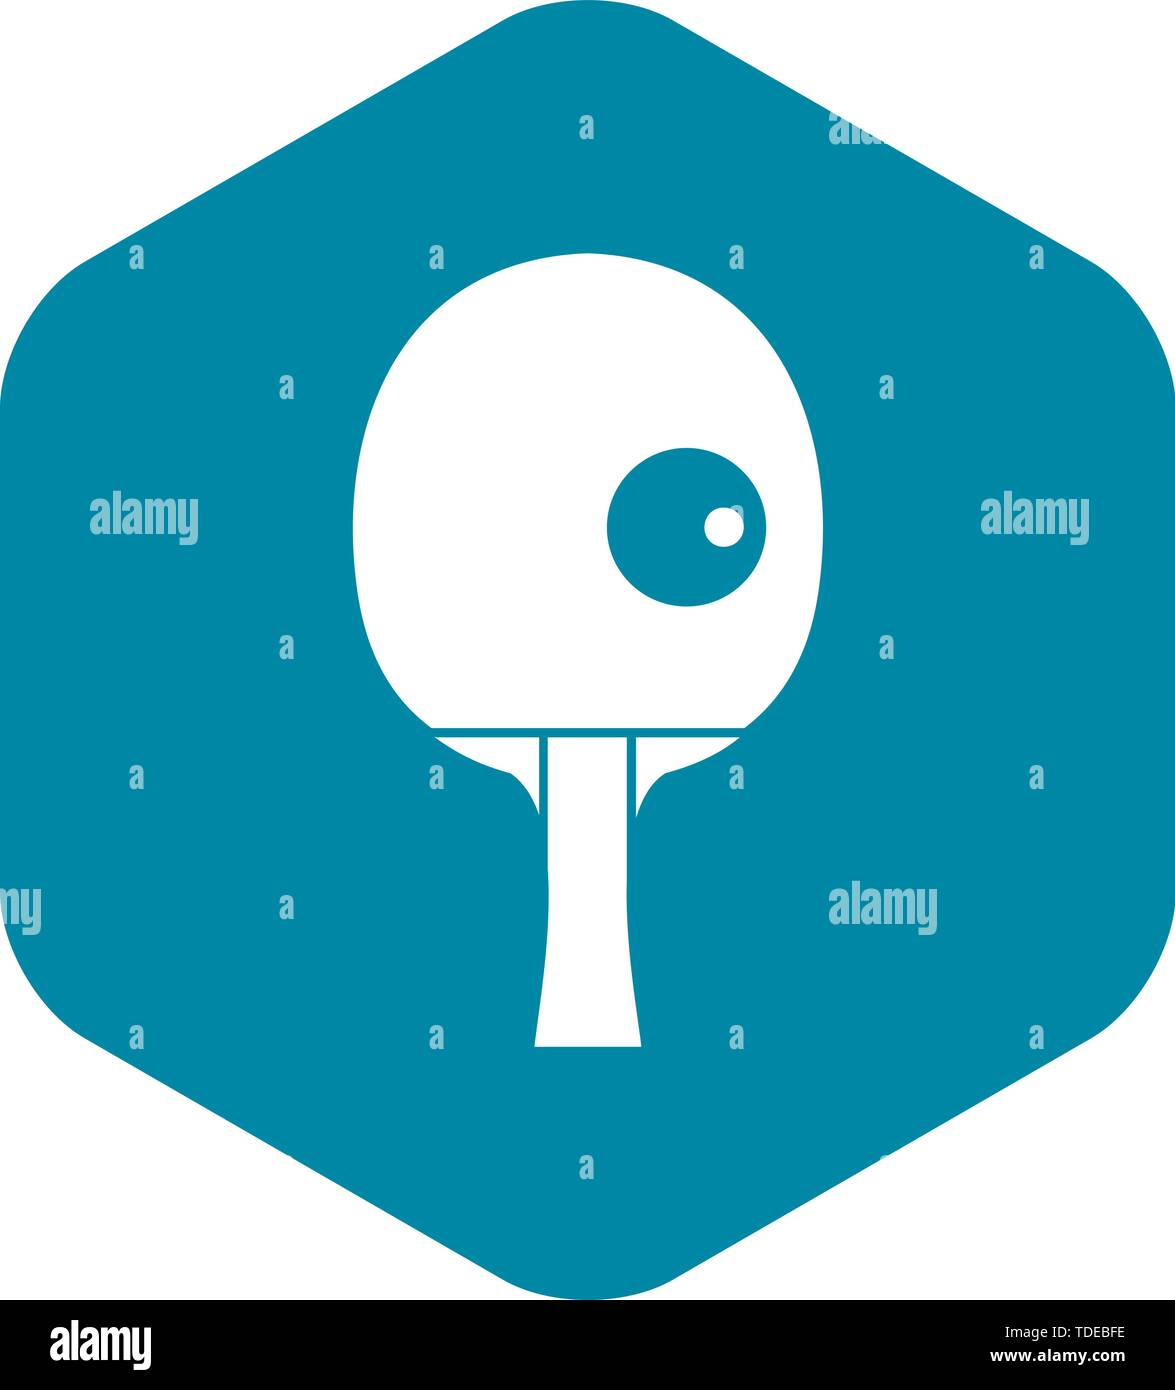 Rackets and ball for playing table tennis icon - Stock Vector